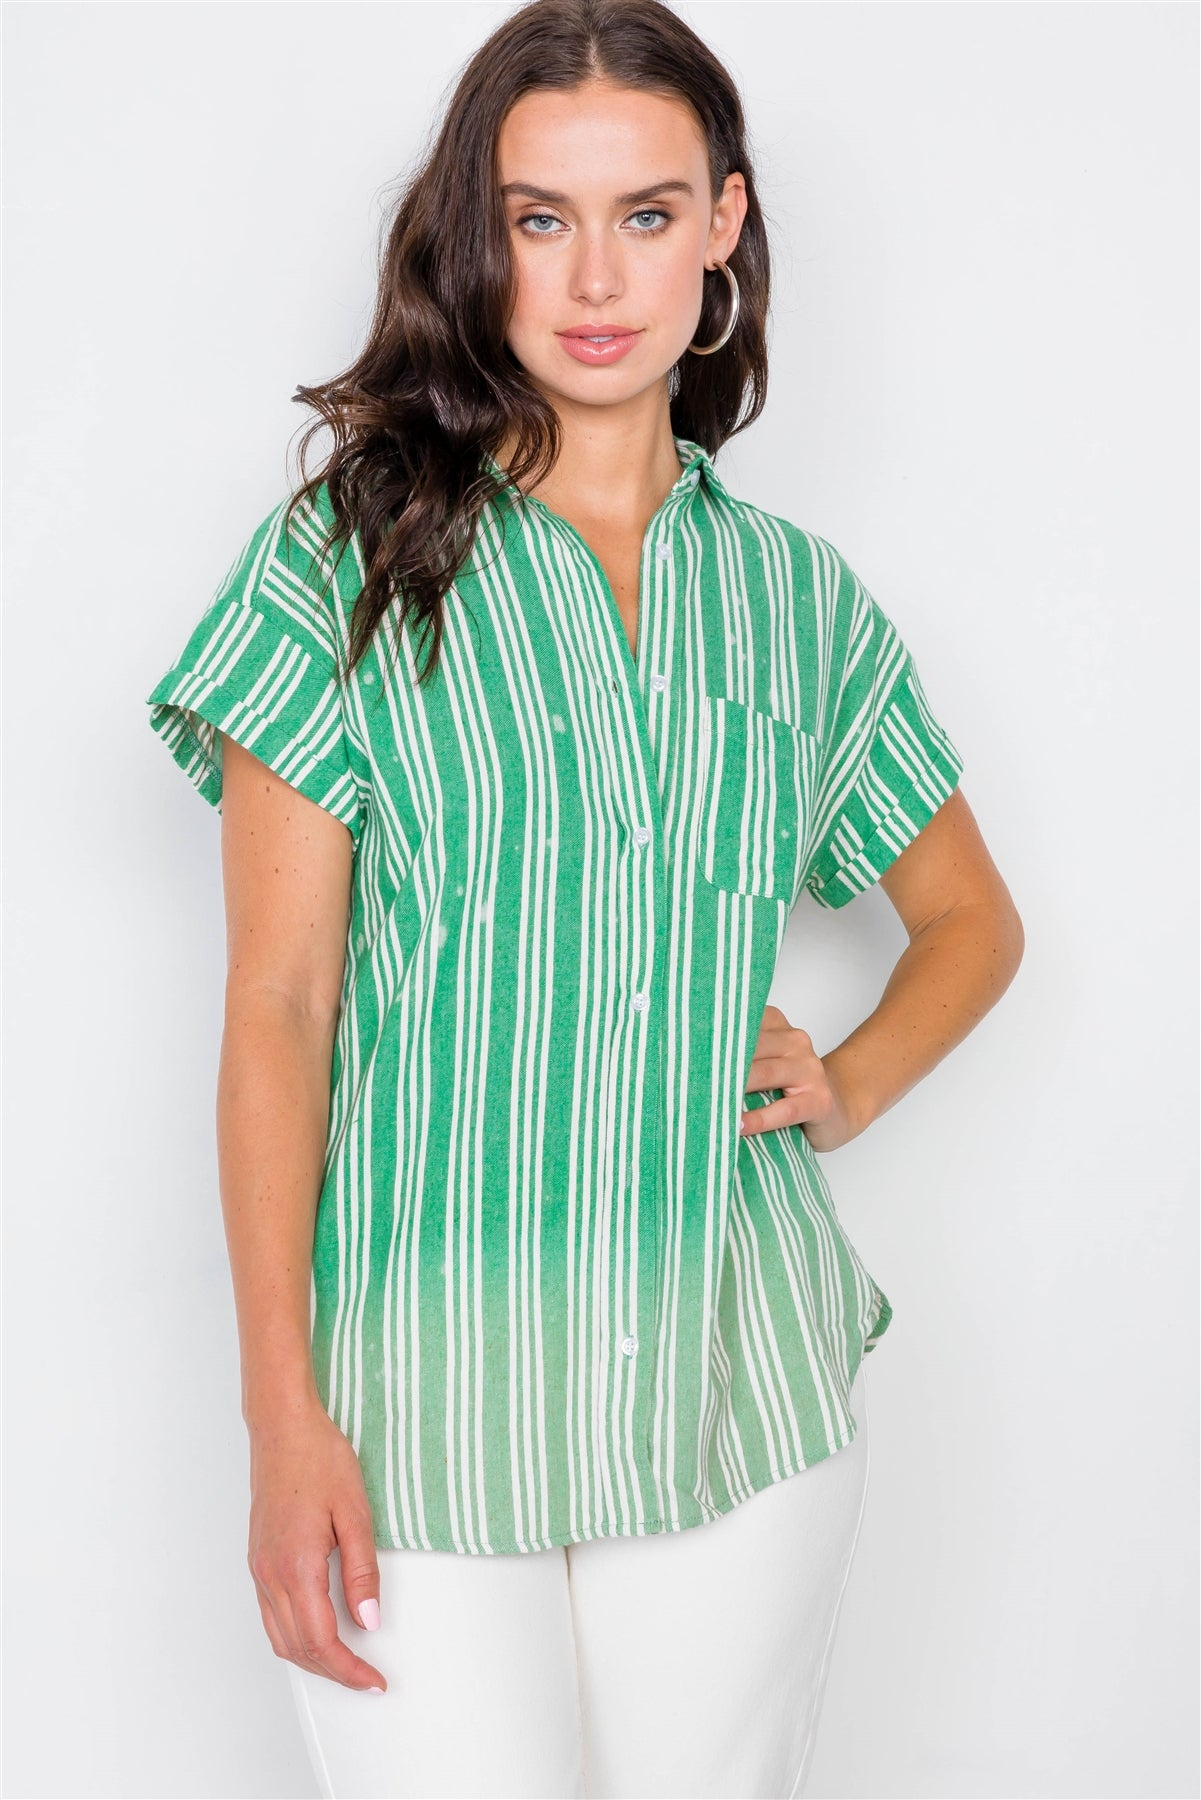 Washed Pinstripe Button Down Top - Creole Couture Boutique